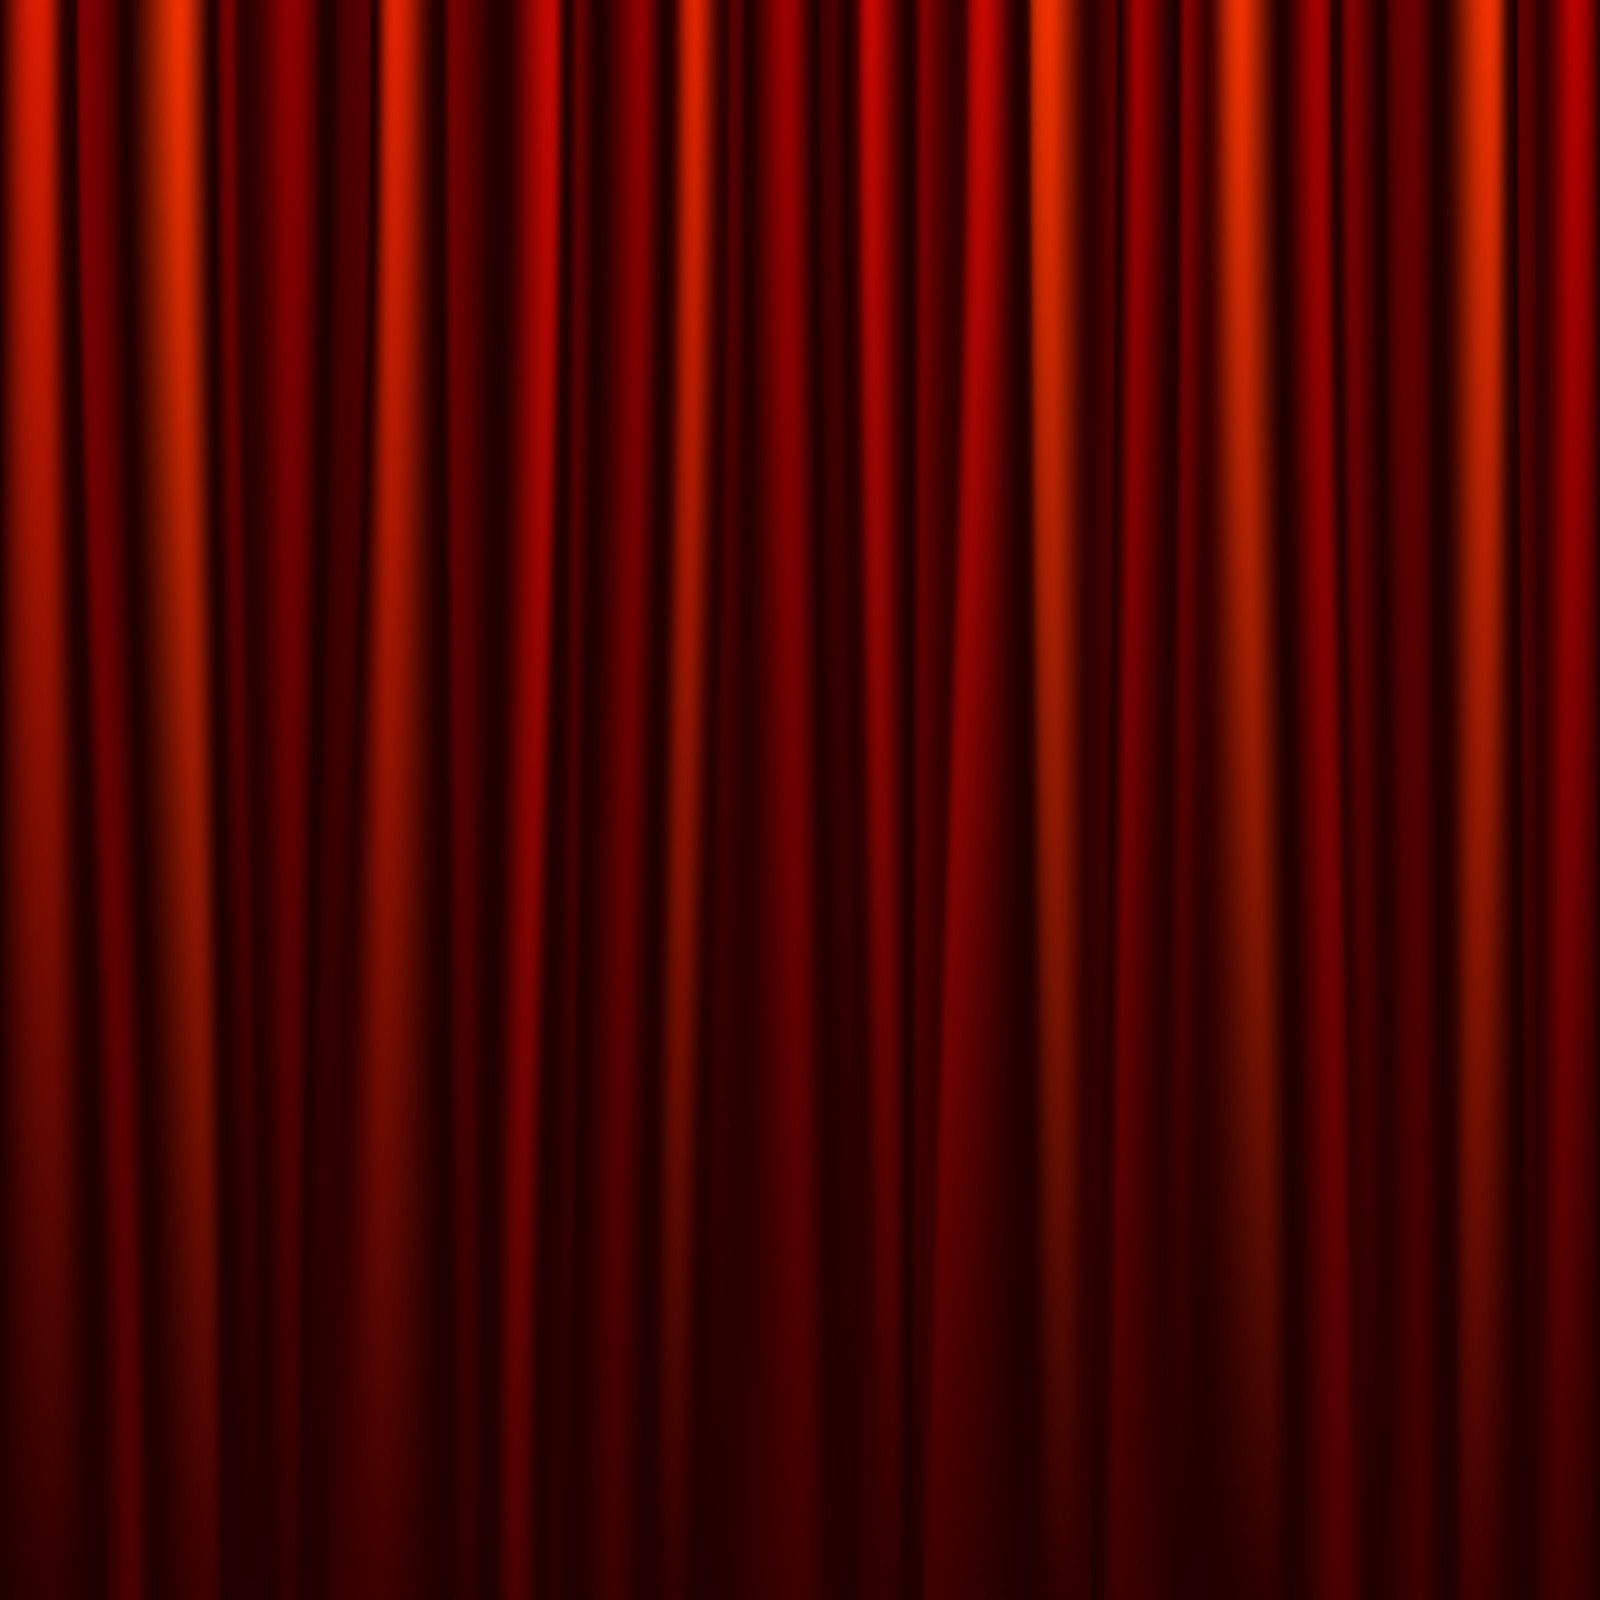 Oscars Red Carpet Set Up Photos 2014 2 besides Vince Vaughn Term Life n 4121891 furthermore Stage Curtain Wallpaper together with File Wiki Background likewise 191246 Hollywood Red Carpet Stage Vector Illustration Background. on oscars red curtain